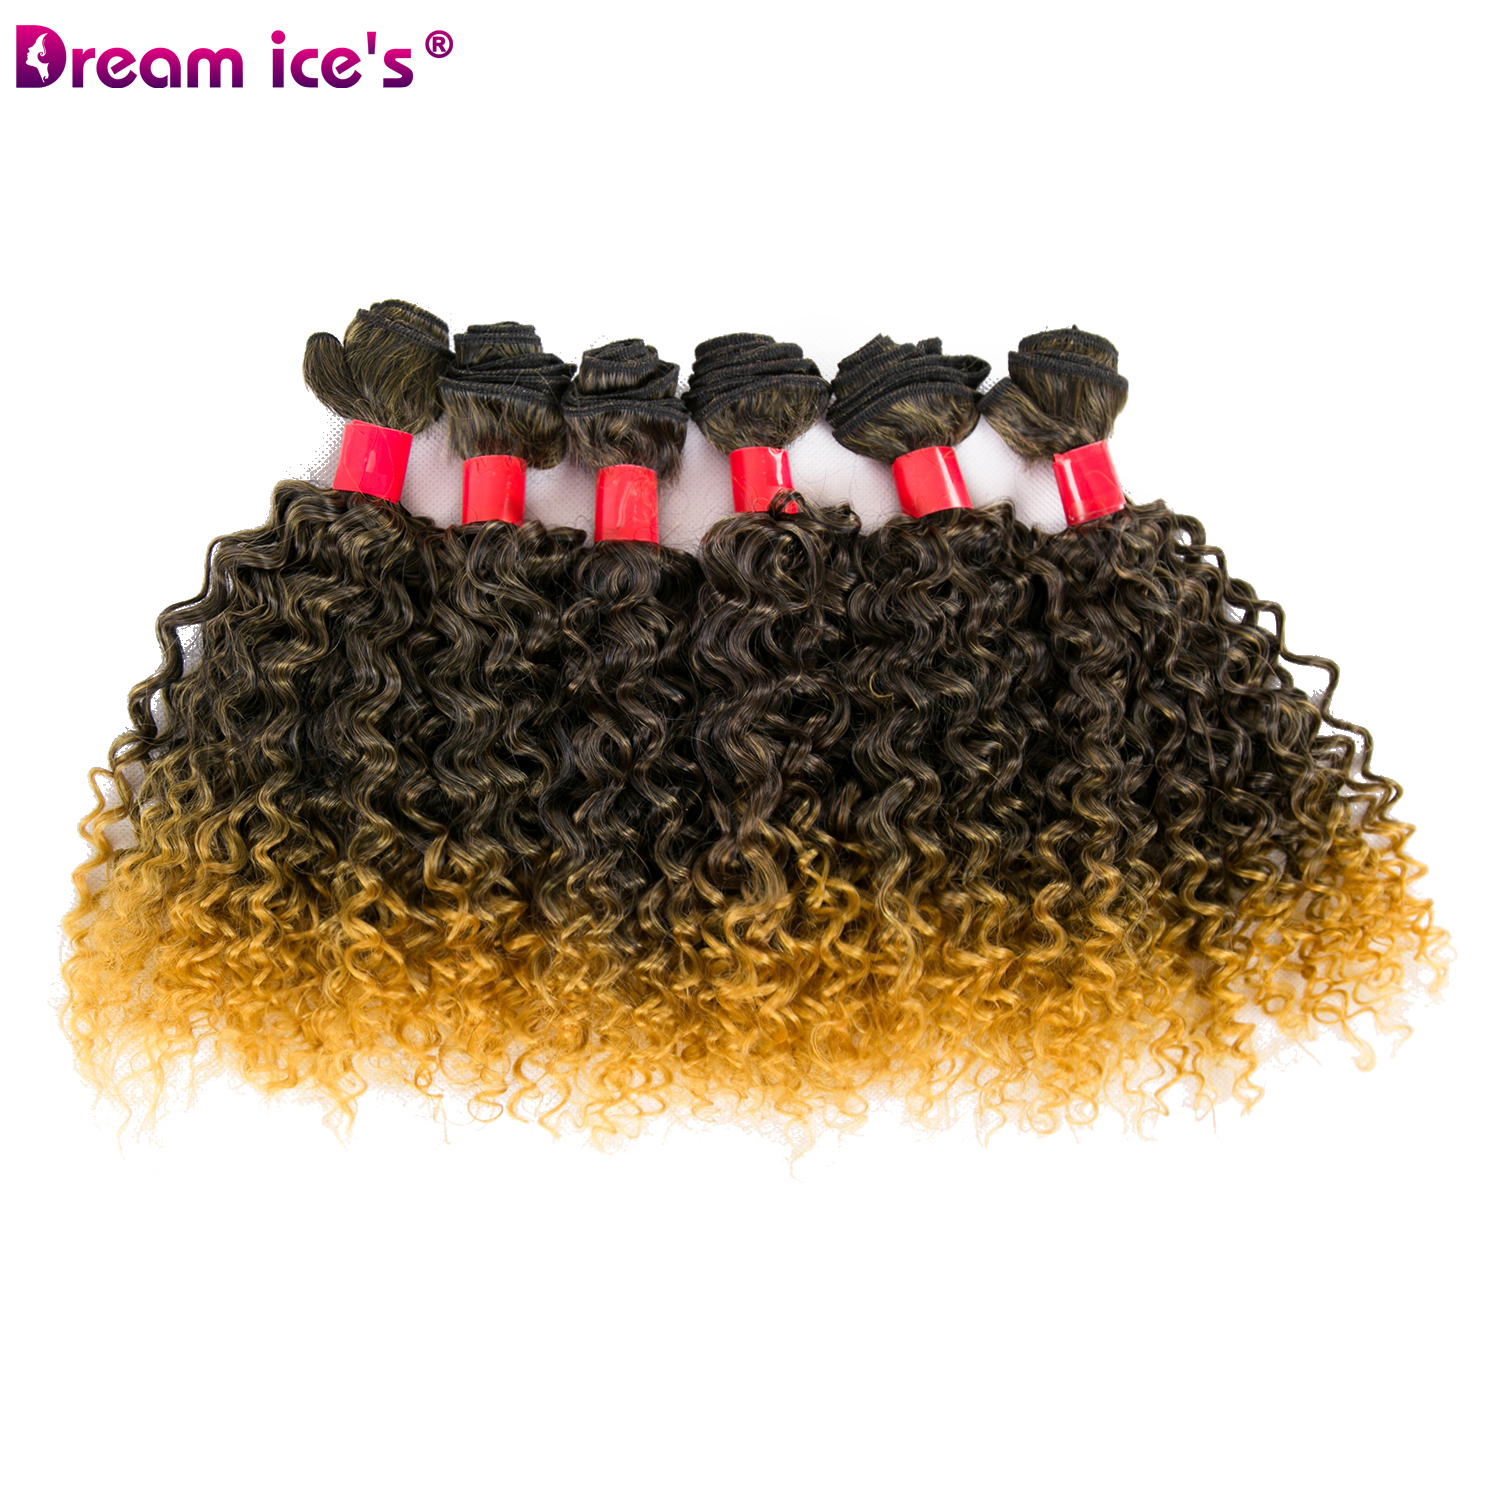 Ombre golden synthetic hair bundle weave afro tissage synthetique short  kinky culry extensions Dream ice's